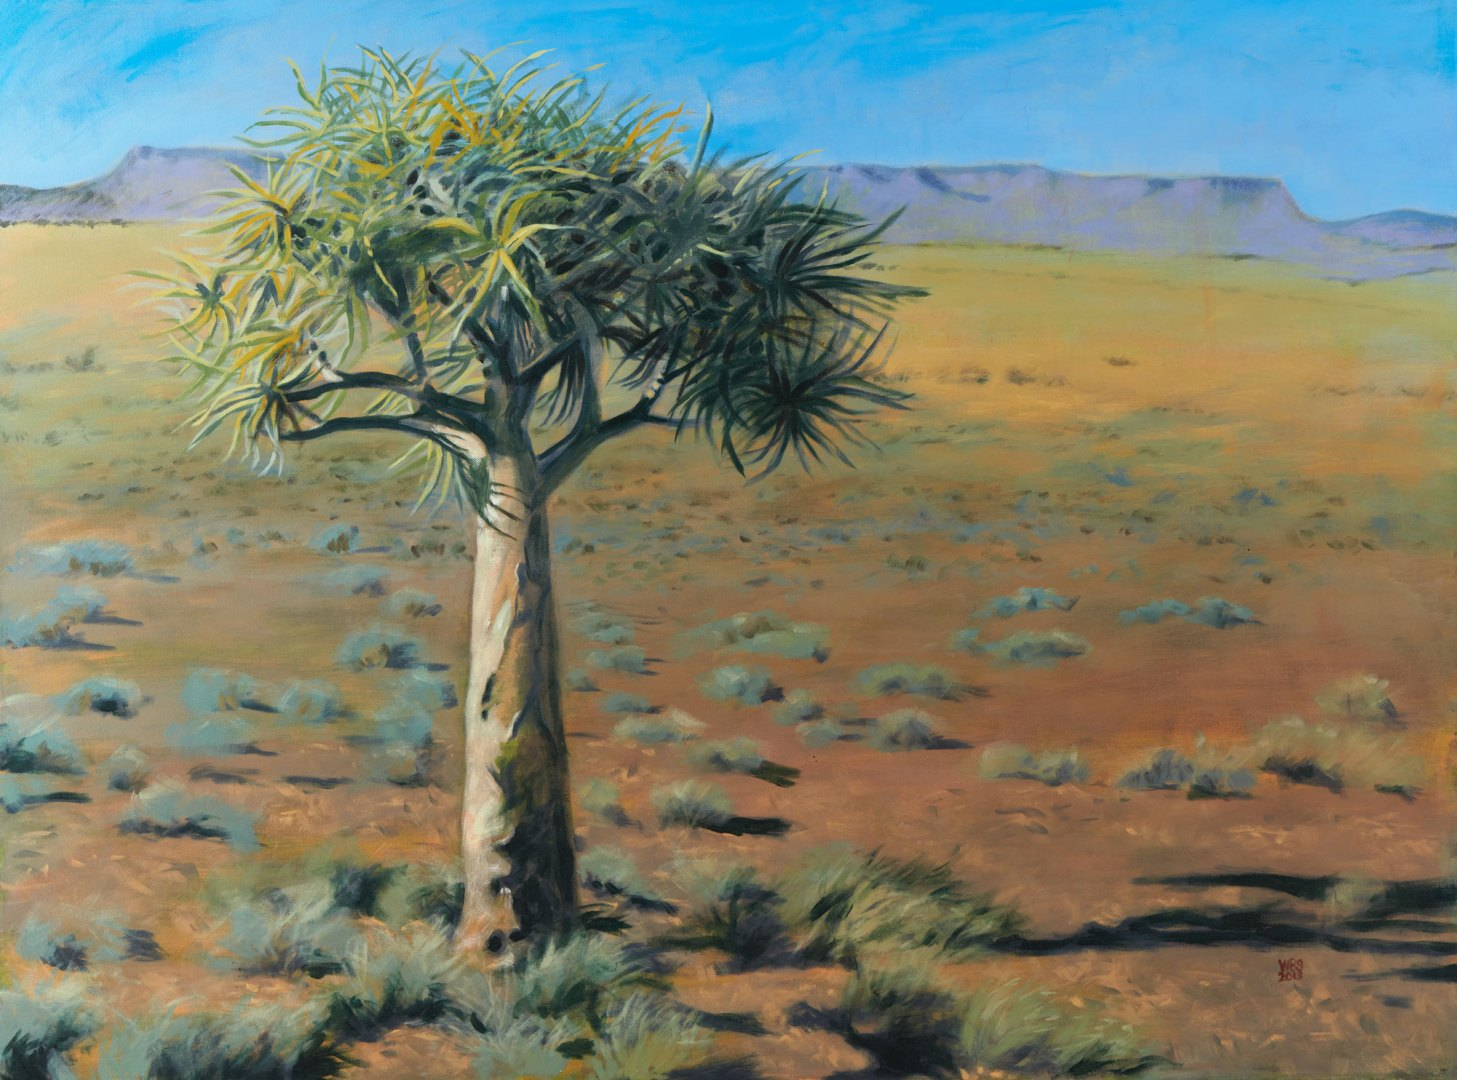 Painting of Kokerboom near Niewoudtville, acrylic on canvas, 122 cm x 91 cm